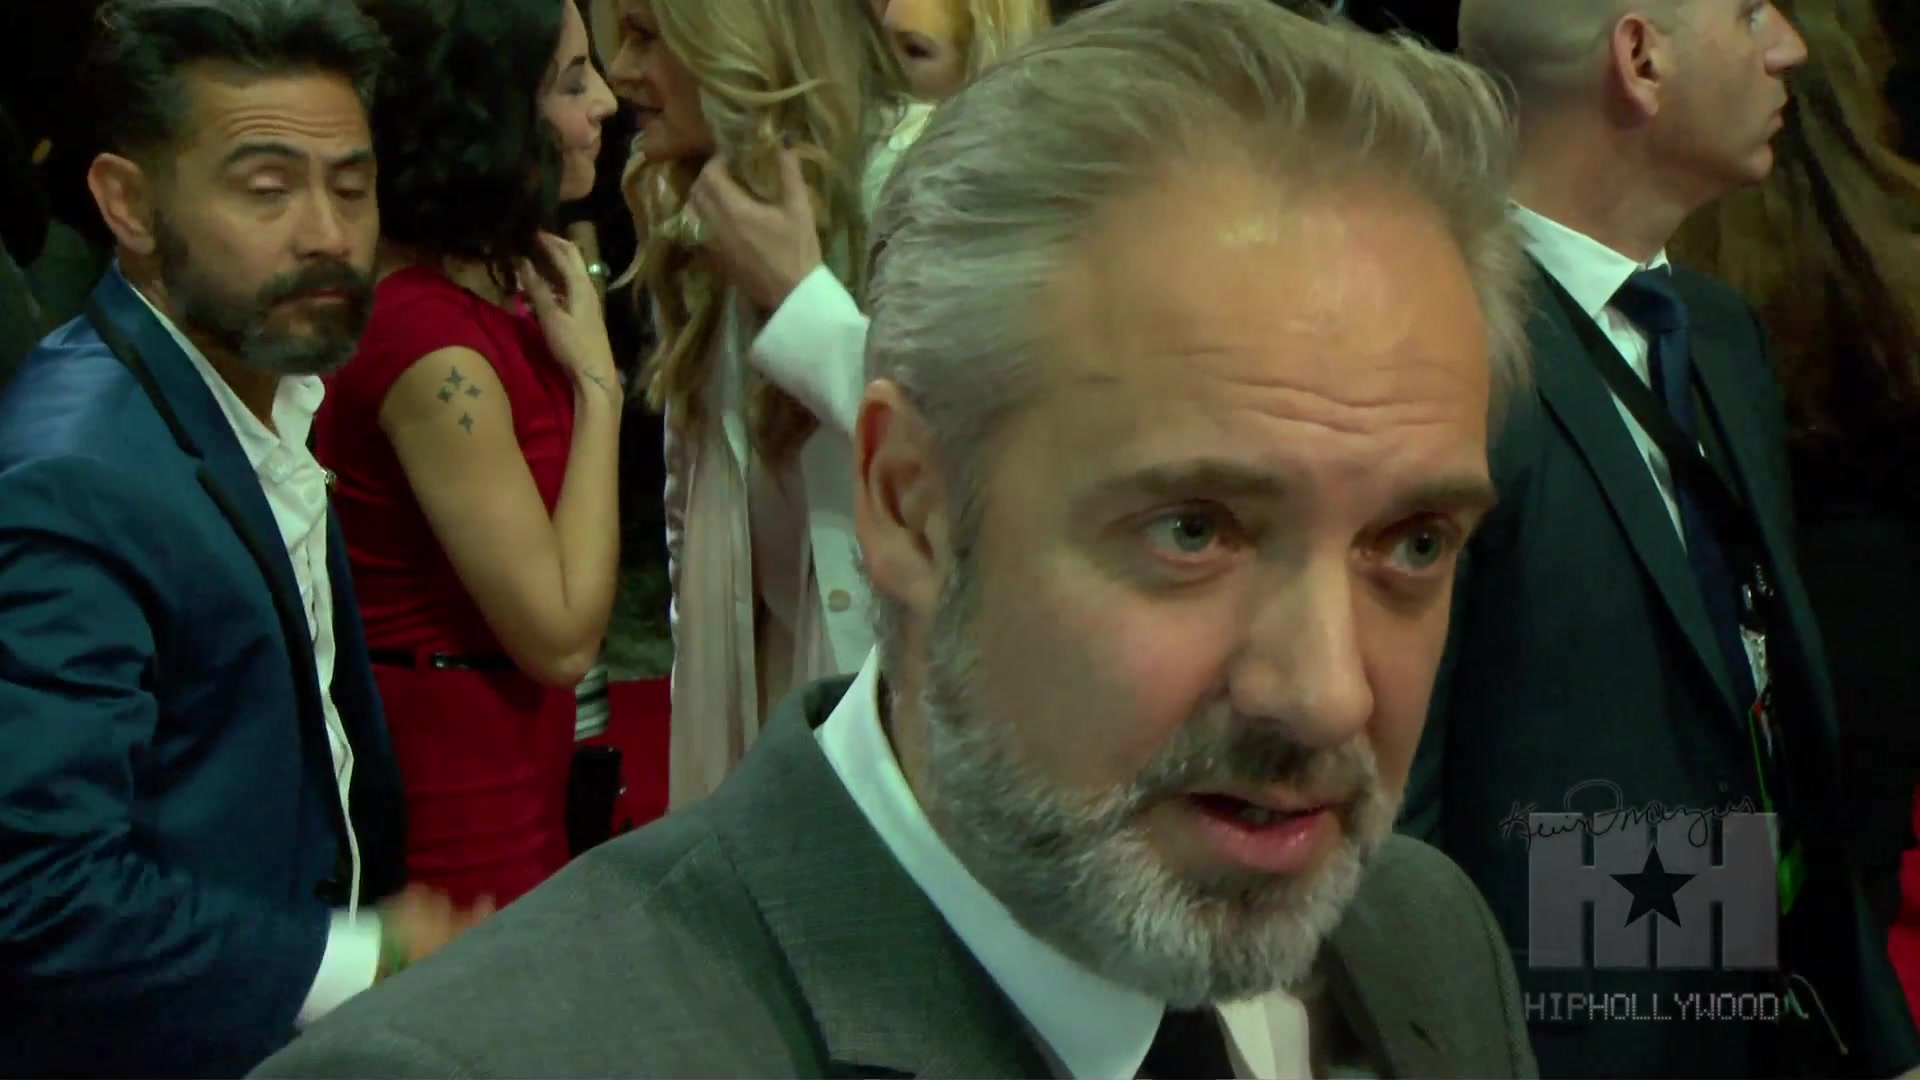 Is 'Spectre' Director Sam Mendes' Last James Bond Movie